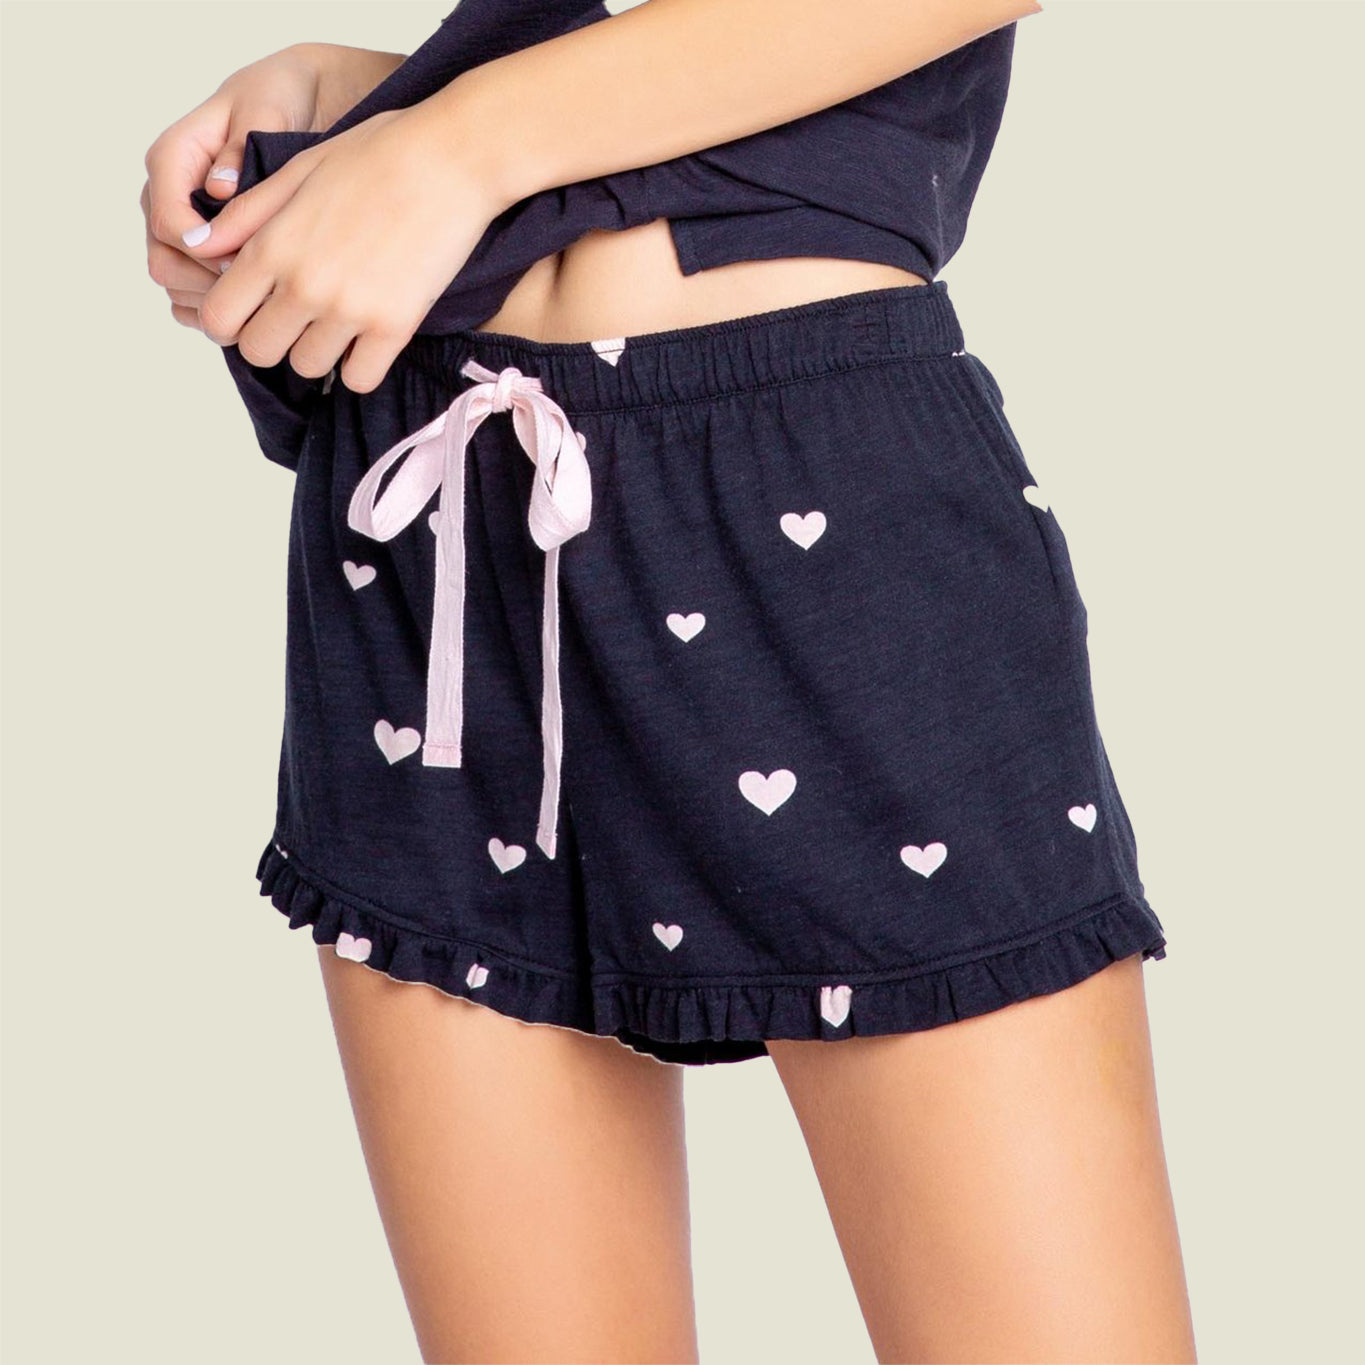 Sweetheart Shorts - Blackbird General Store